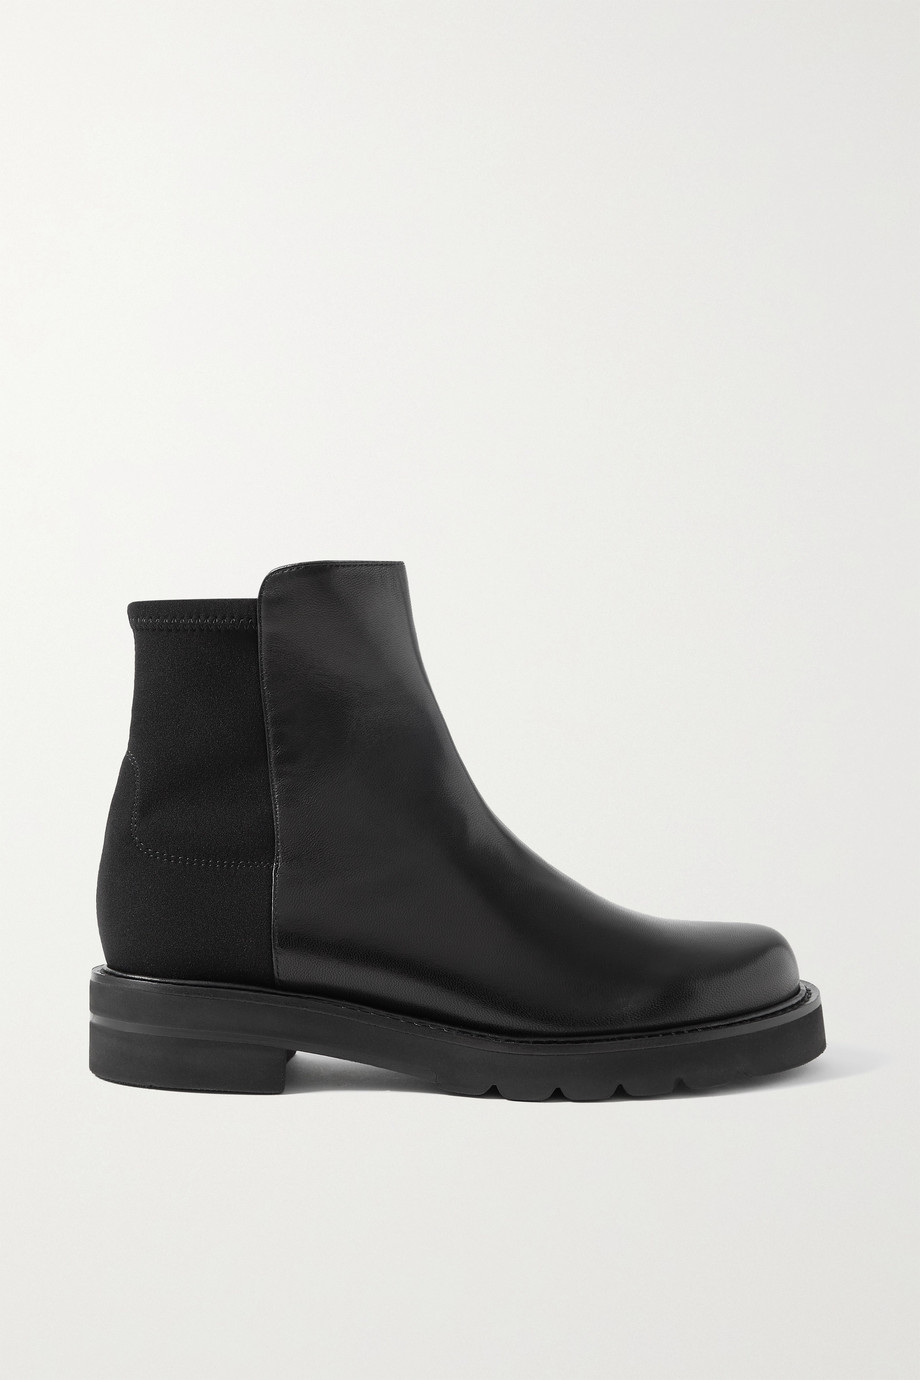 Stuart Weitzman 5050 Lift leather and neoprene ankle boots